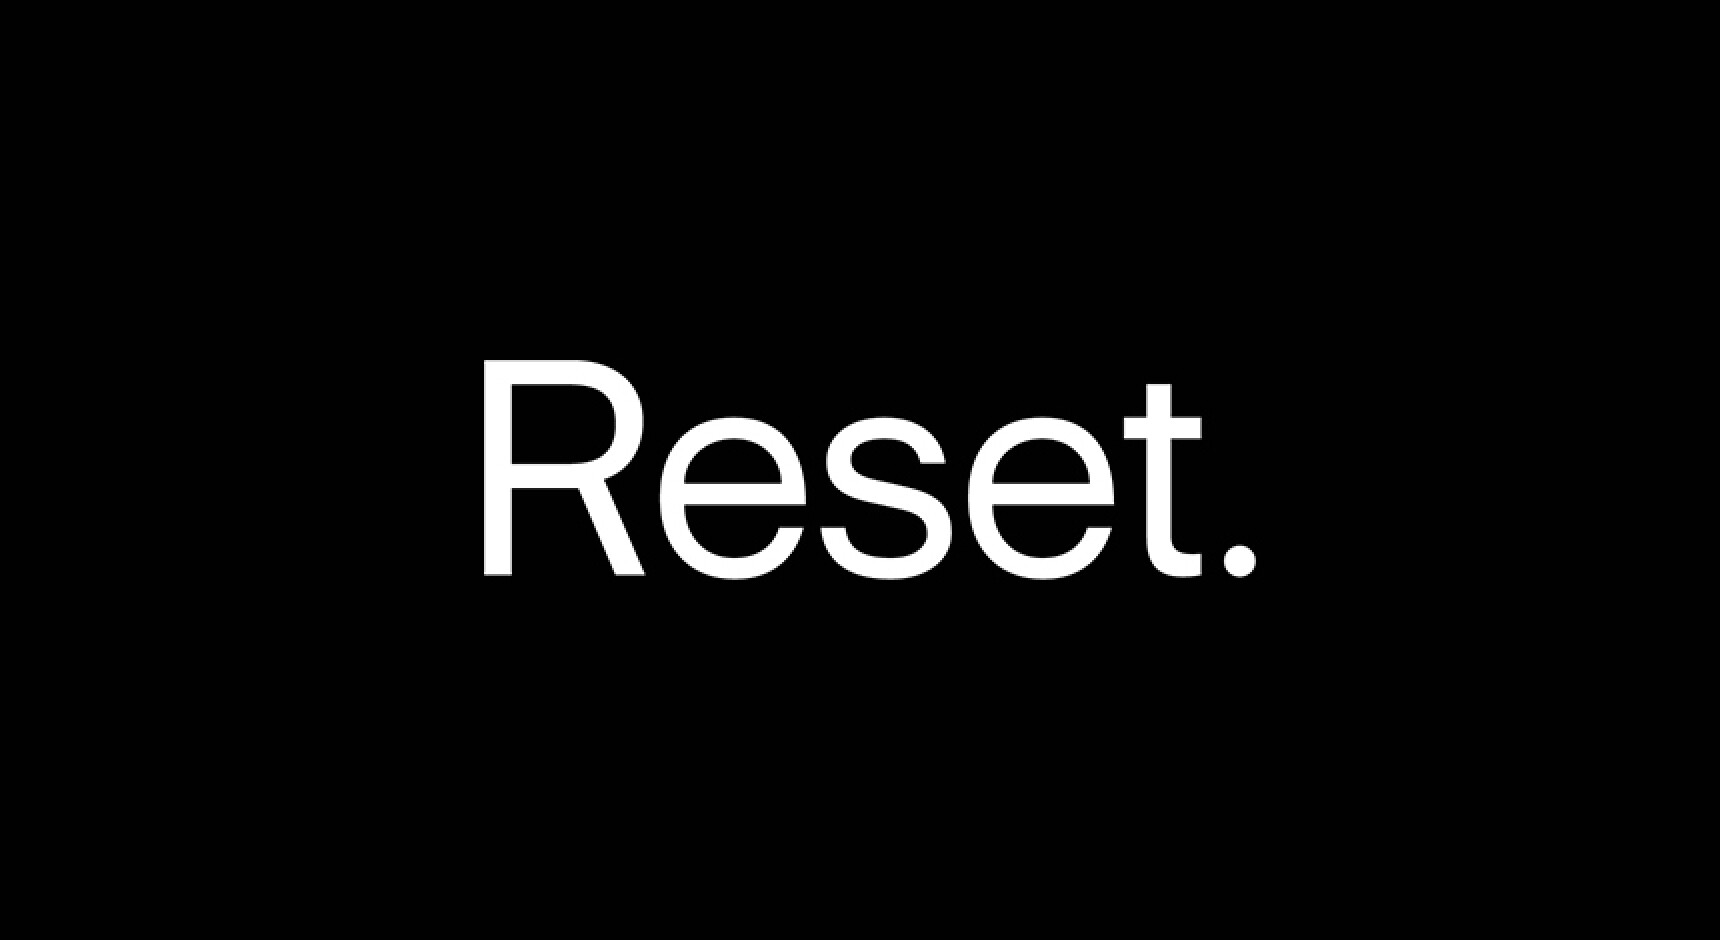 How to Hard reset LG G Vista (CDMA) - step by step with Picture